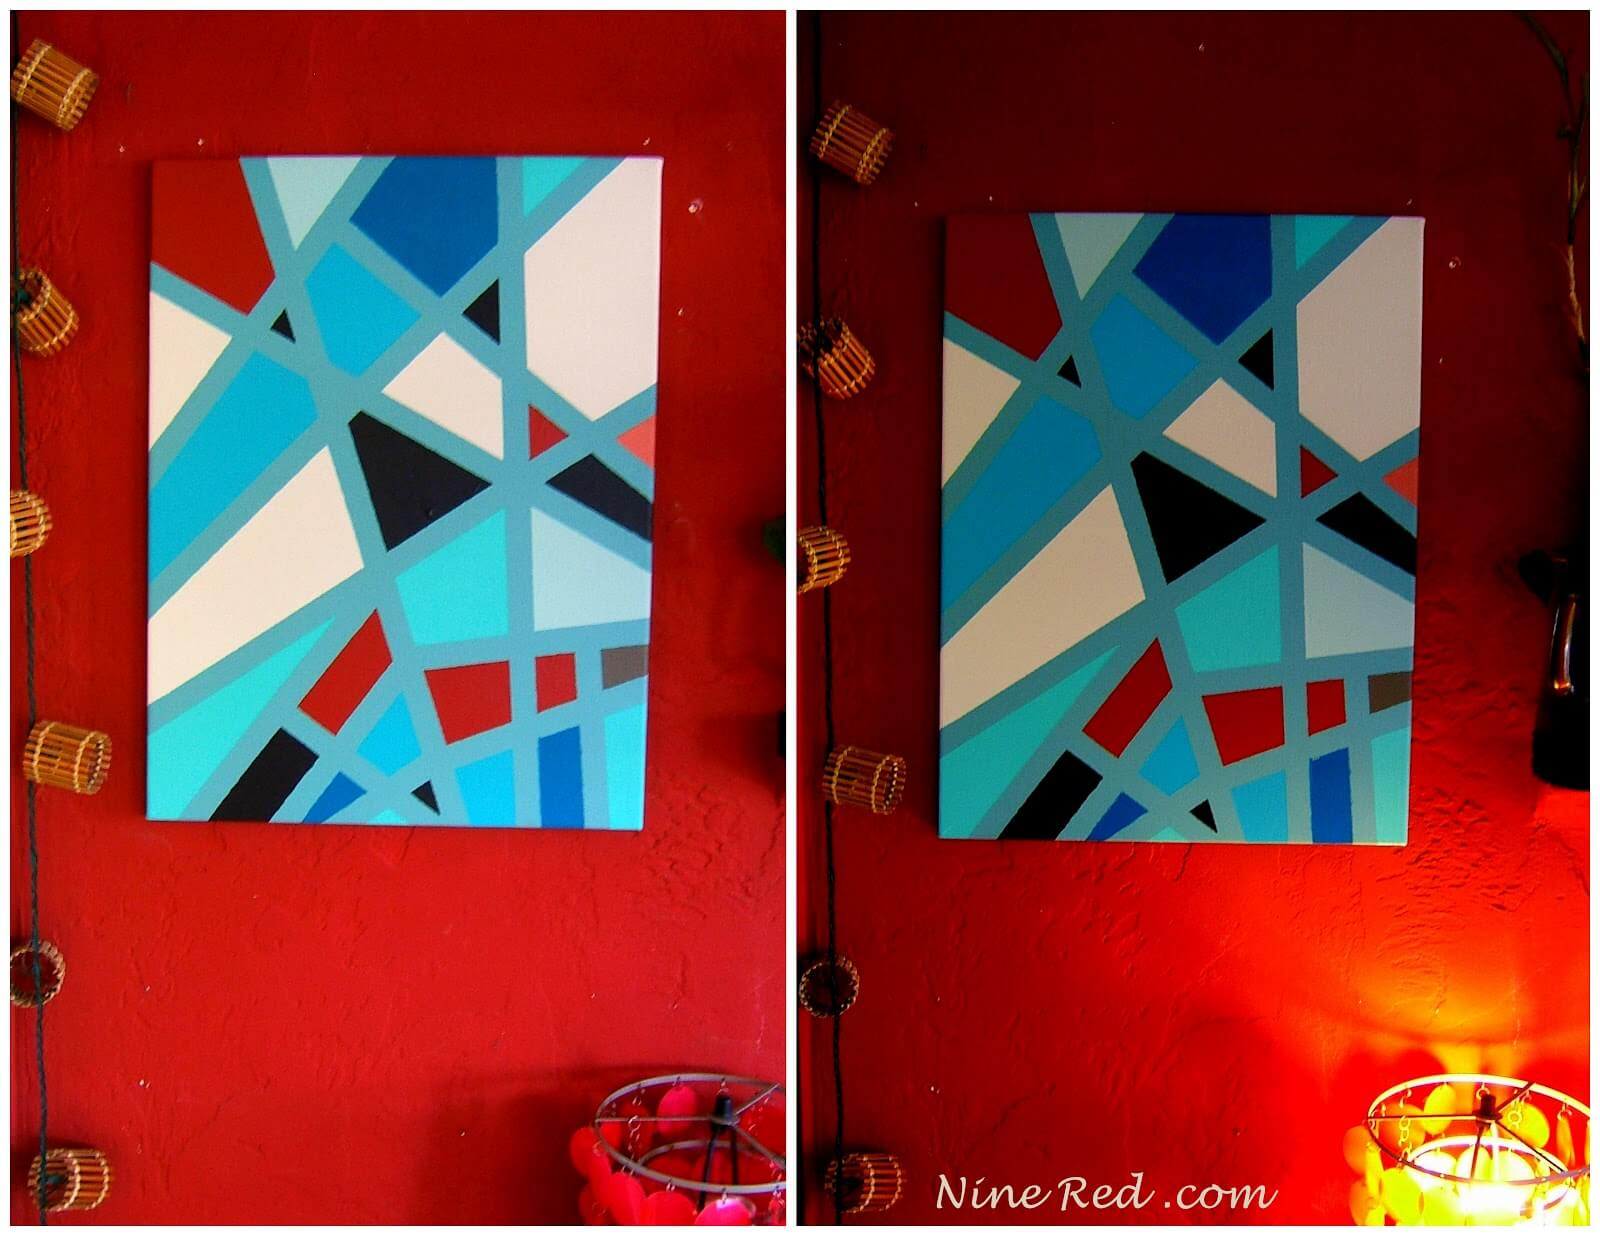 Easy art that hangs well anywhere in the house